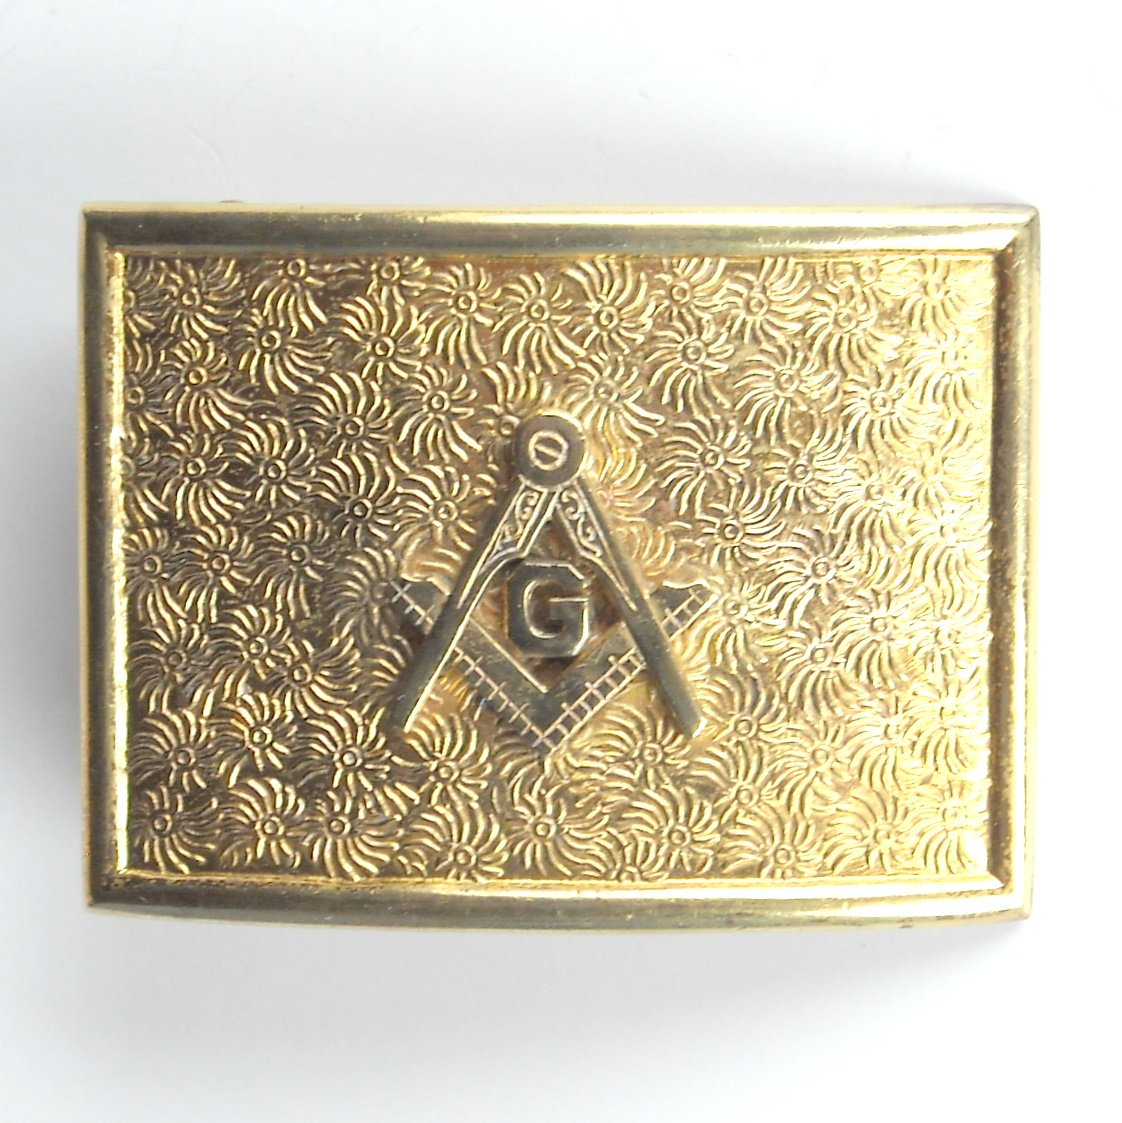 Vintage RARE Freemason Masonic metal belt buckle